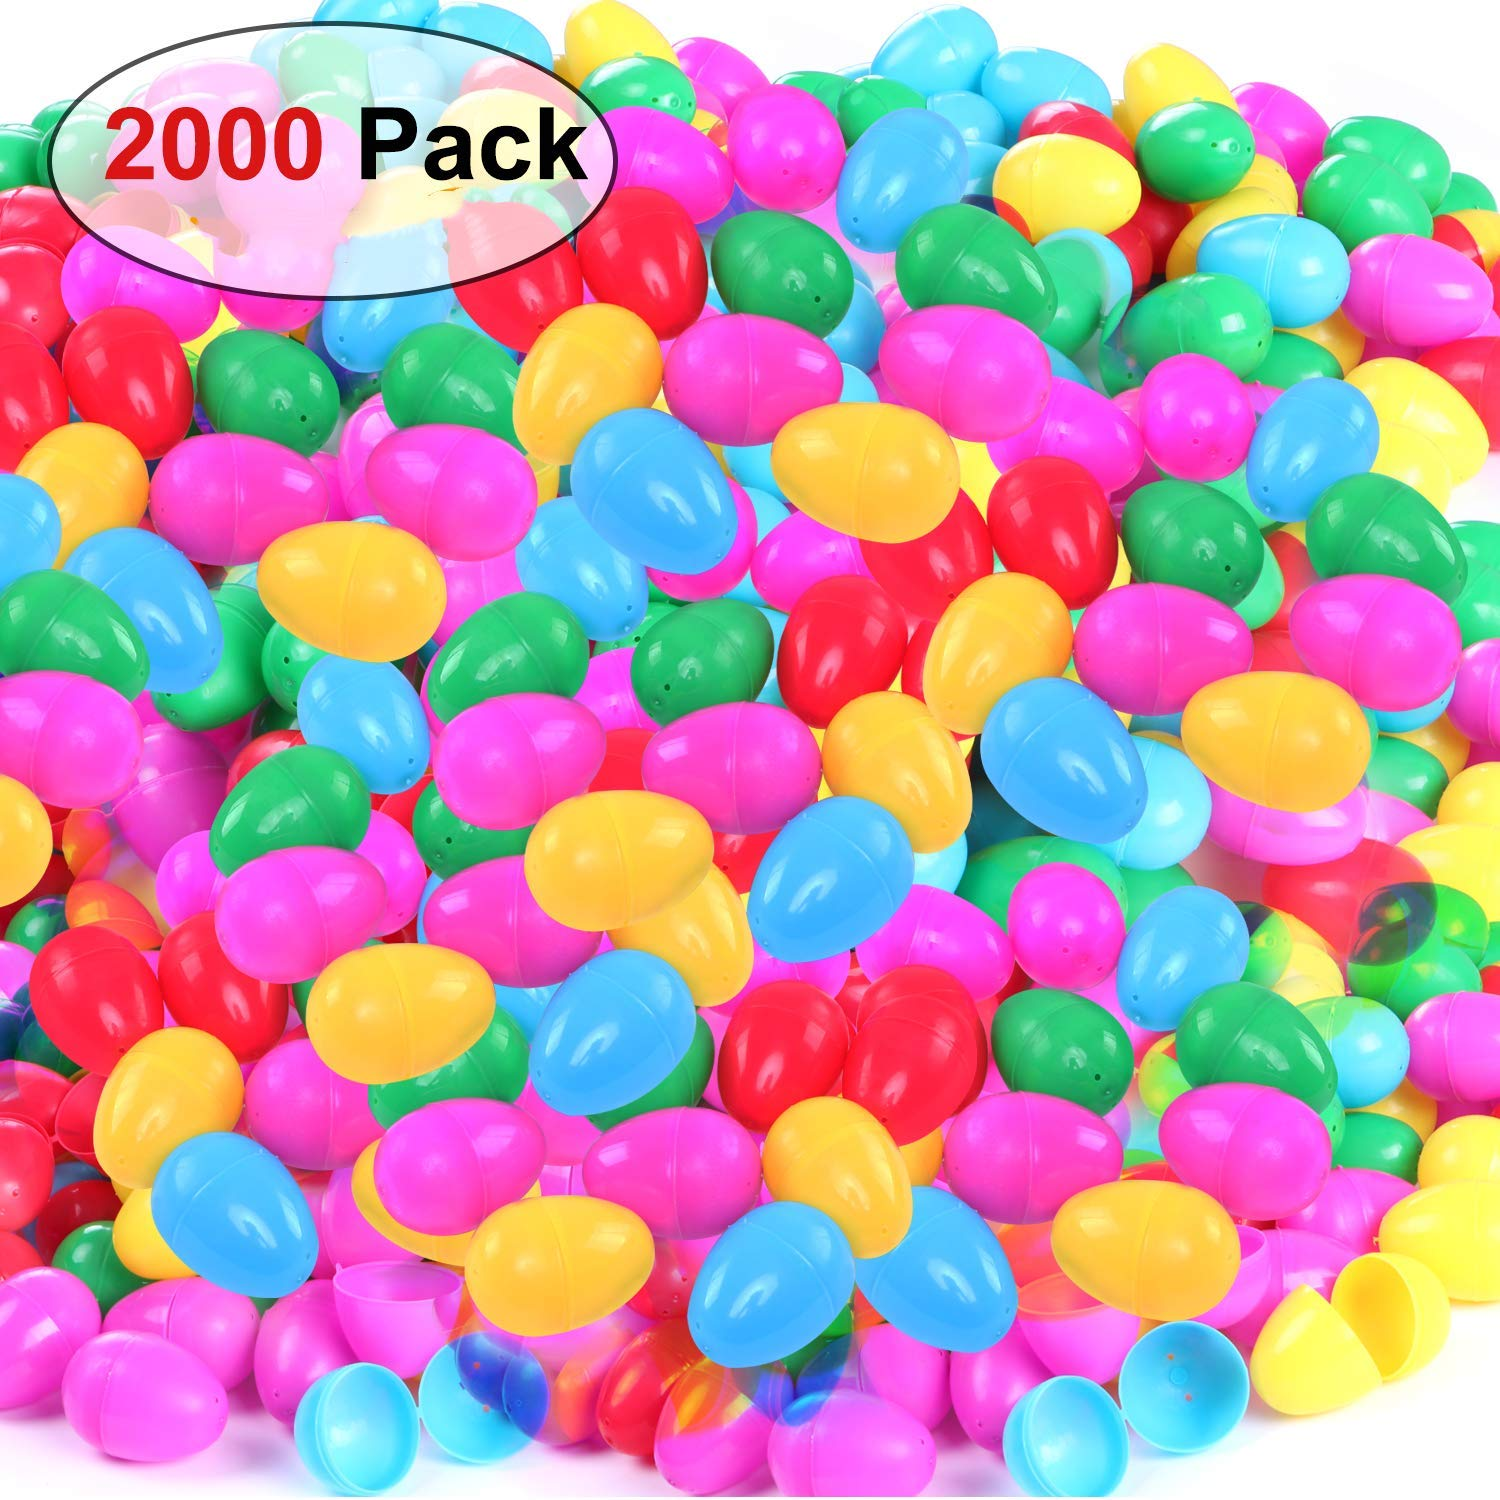 NEWBEA Plastic Jumbo Easter Eggs Assortment Unfilled for Kids (2000 Count)-Bright Colors, Easy Snap Shut, and Never Lose Pieces for Party Decoration Supplies (2000 Pack)